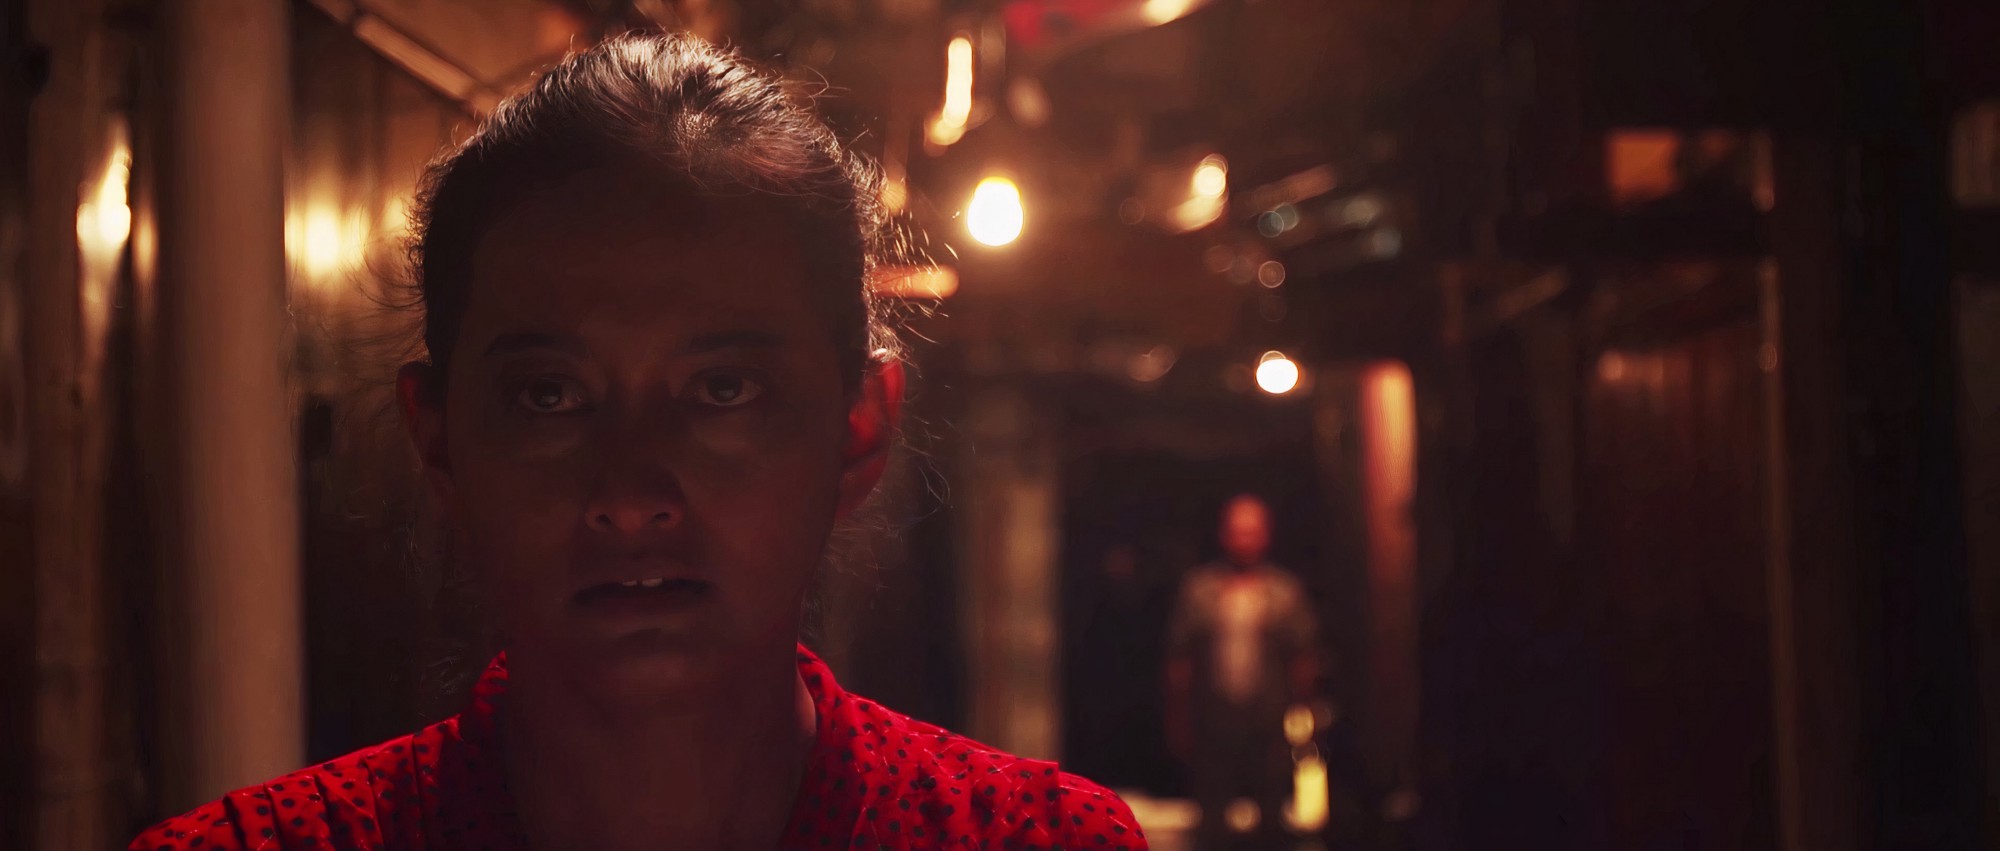 Film still from RONG of protagonist played by Maryam Supraba, wearing a red dress, walking toward the camera through a dark alleyway, followed by a man at a distance, just out of focus.